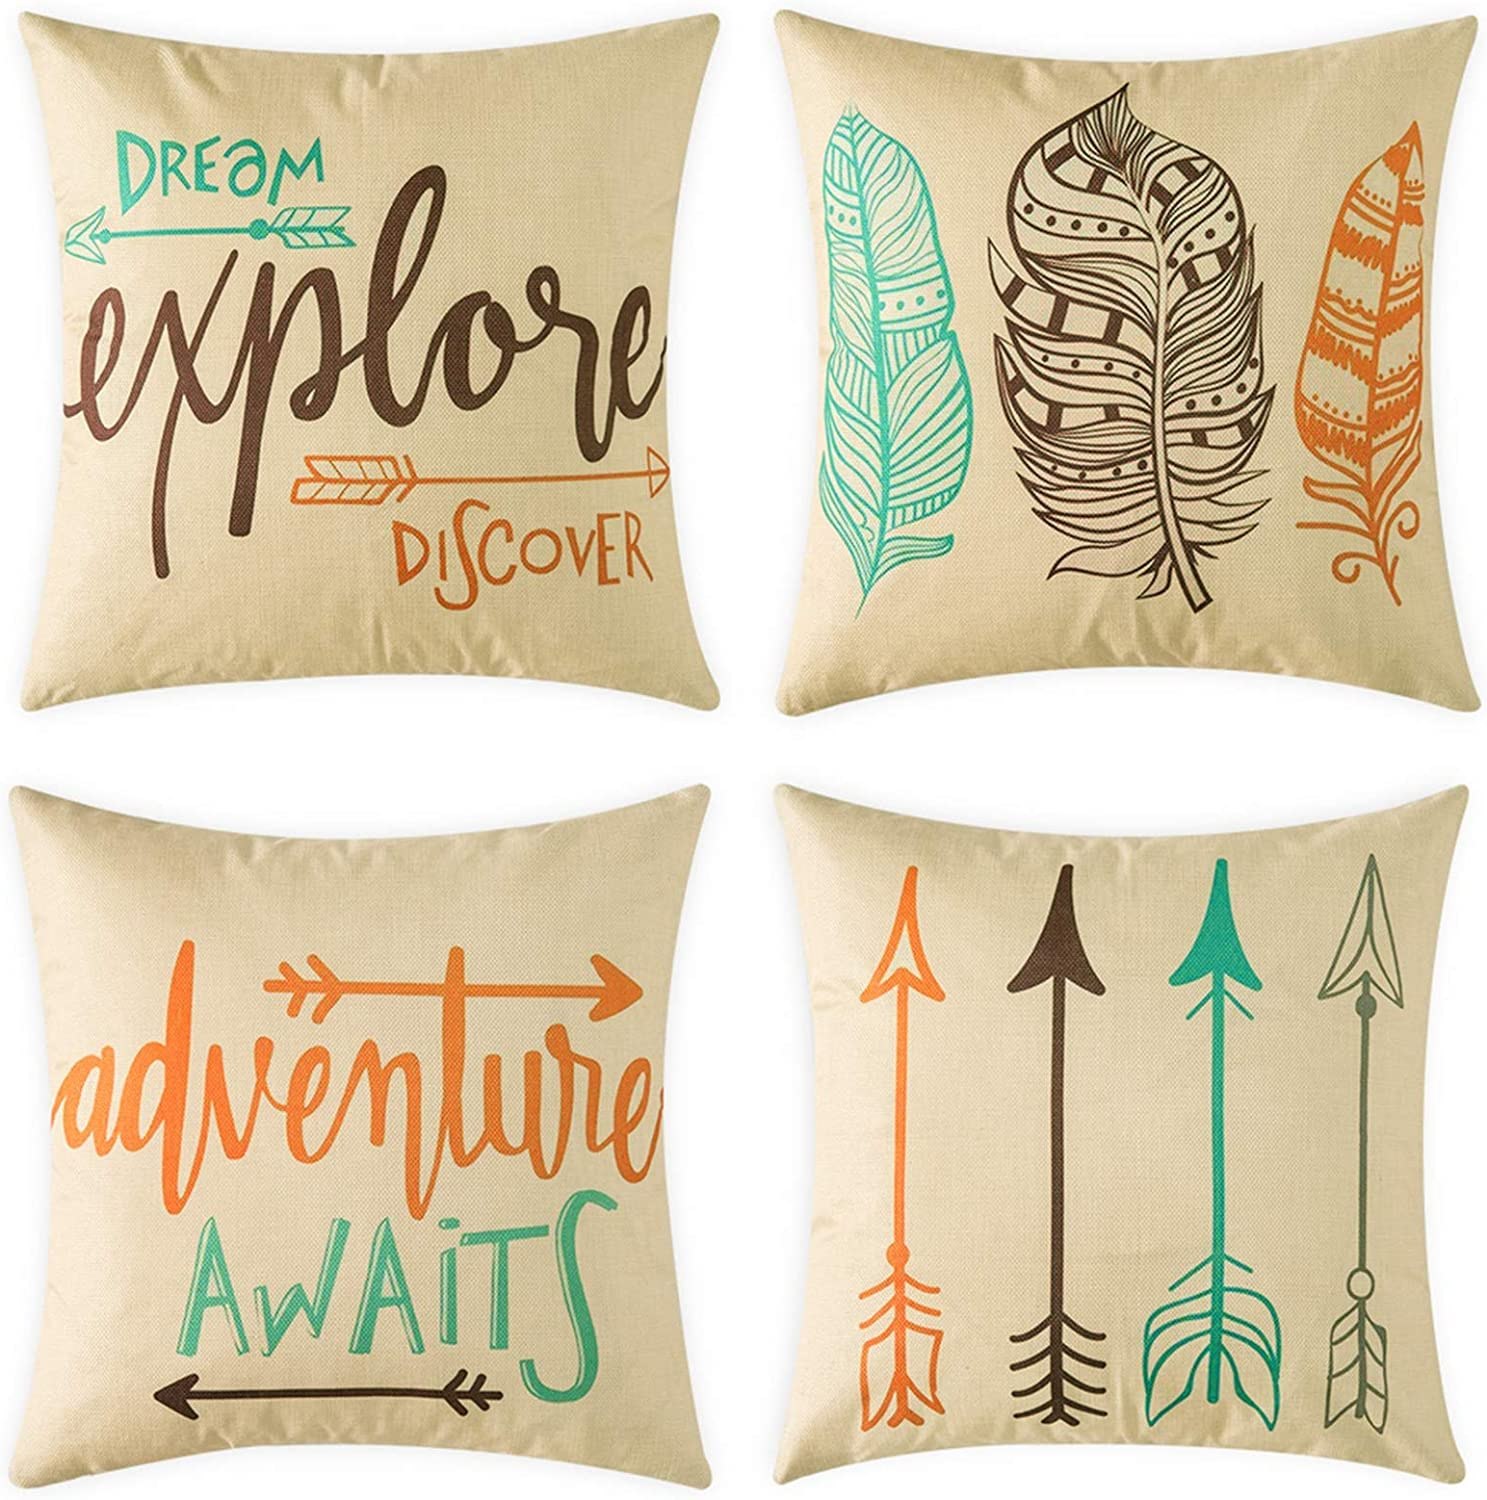 Woaboy Set of 4 Cotten Linen Pillow Cover Arrow and Feather Printed Pillowcase Square Decorative Cushion Cover Soft for Car Sofa Bed Couch Living Room 18 x 18Inch 45 x 45cm